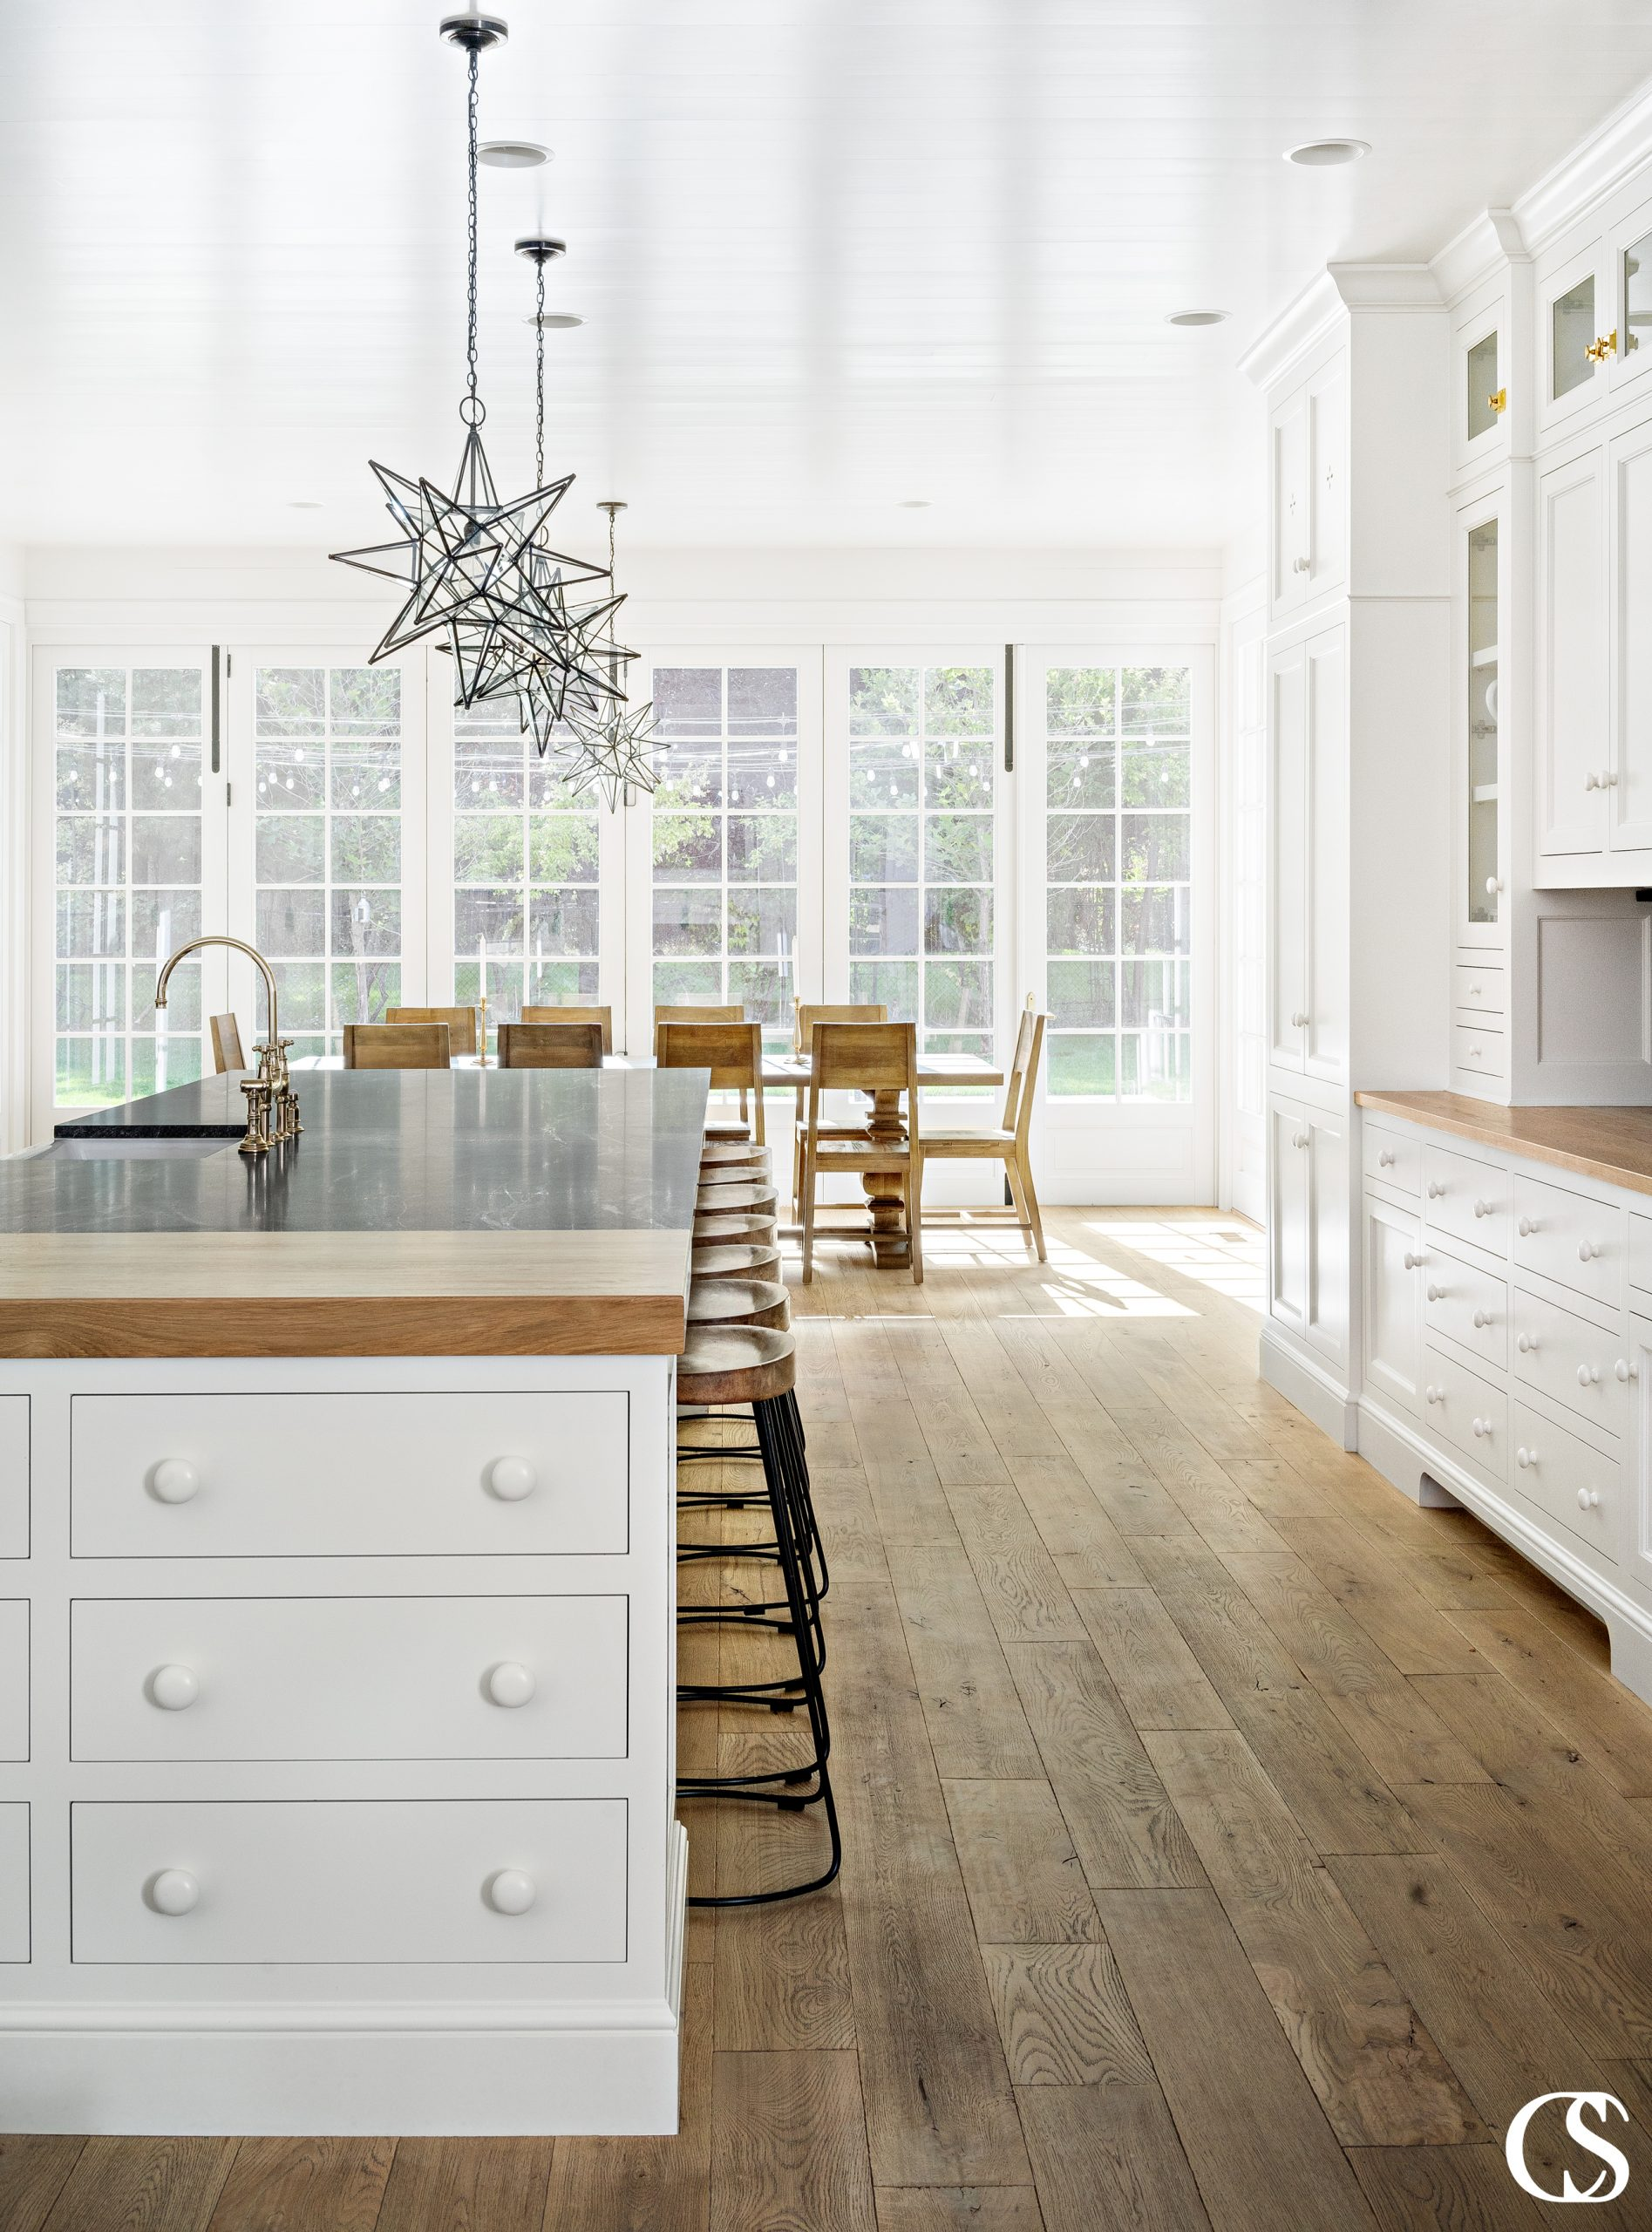 The key to the best built-in custom kitchen design is making what looks good fuse with what function and organization—for each individual homeowner.